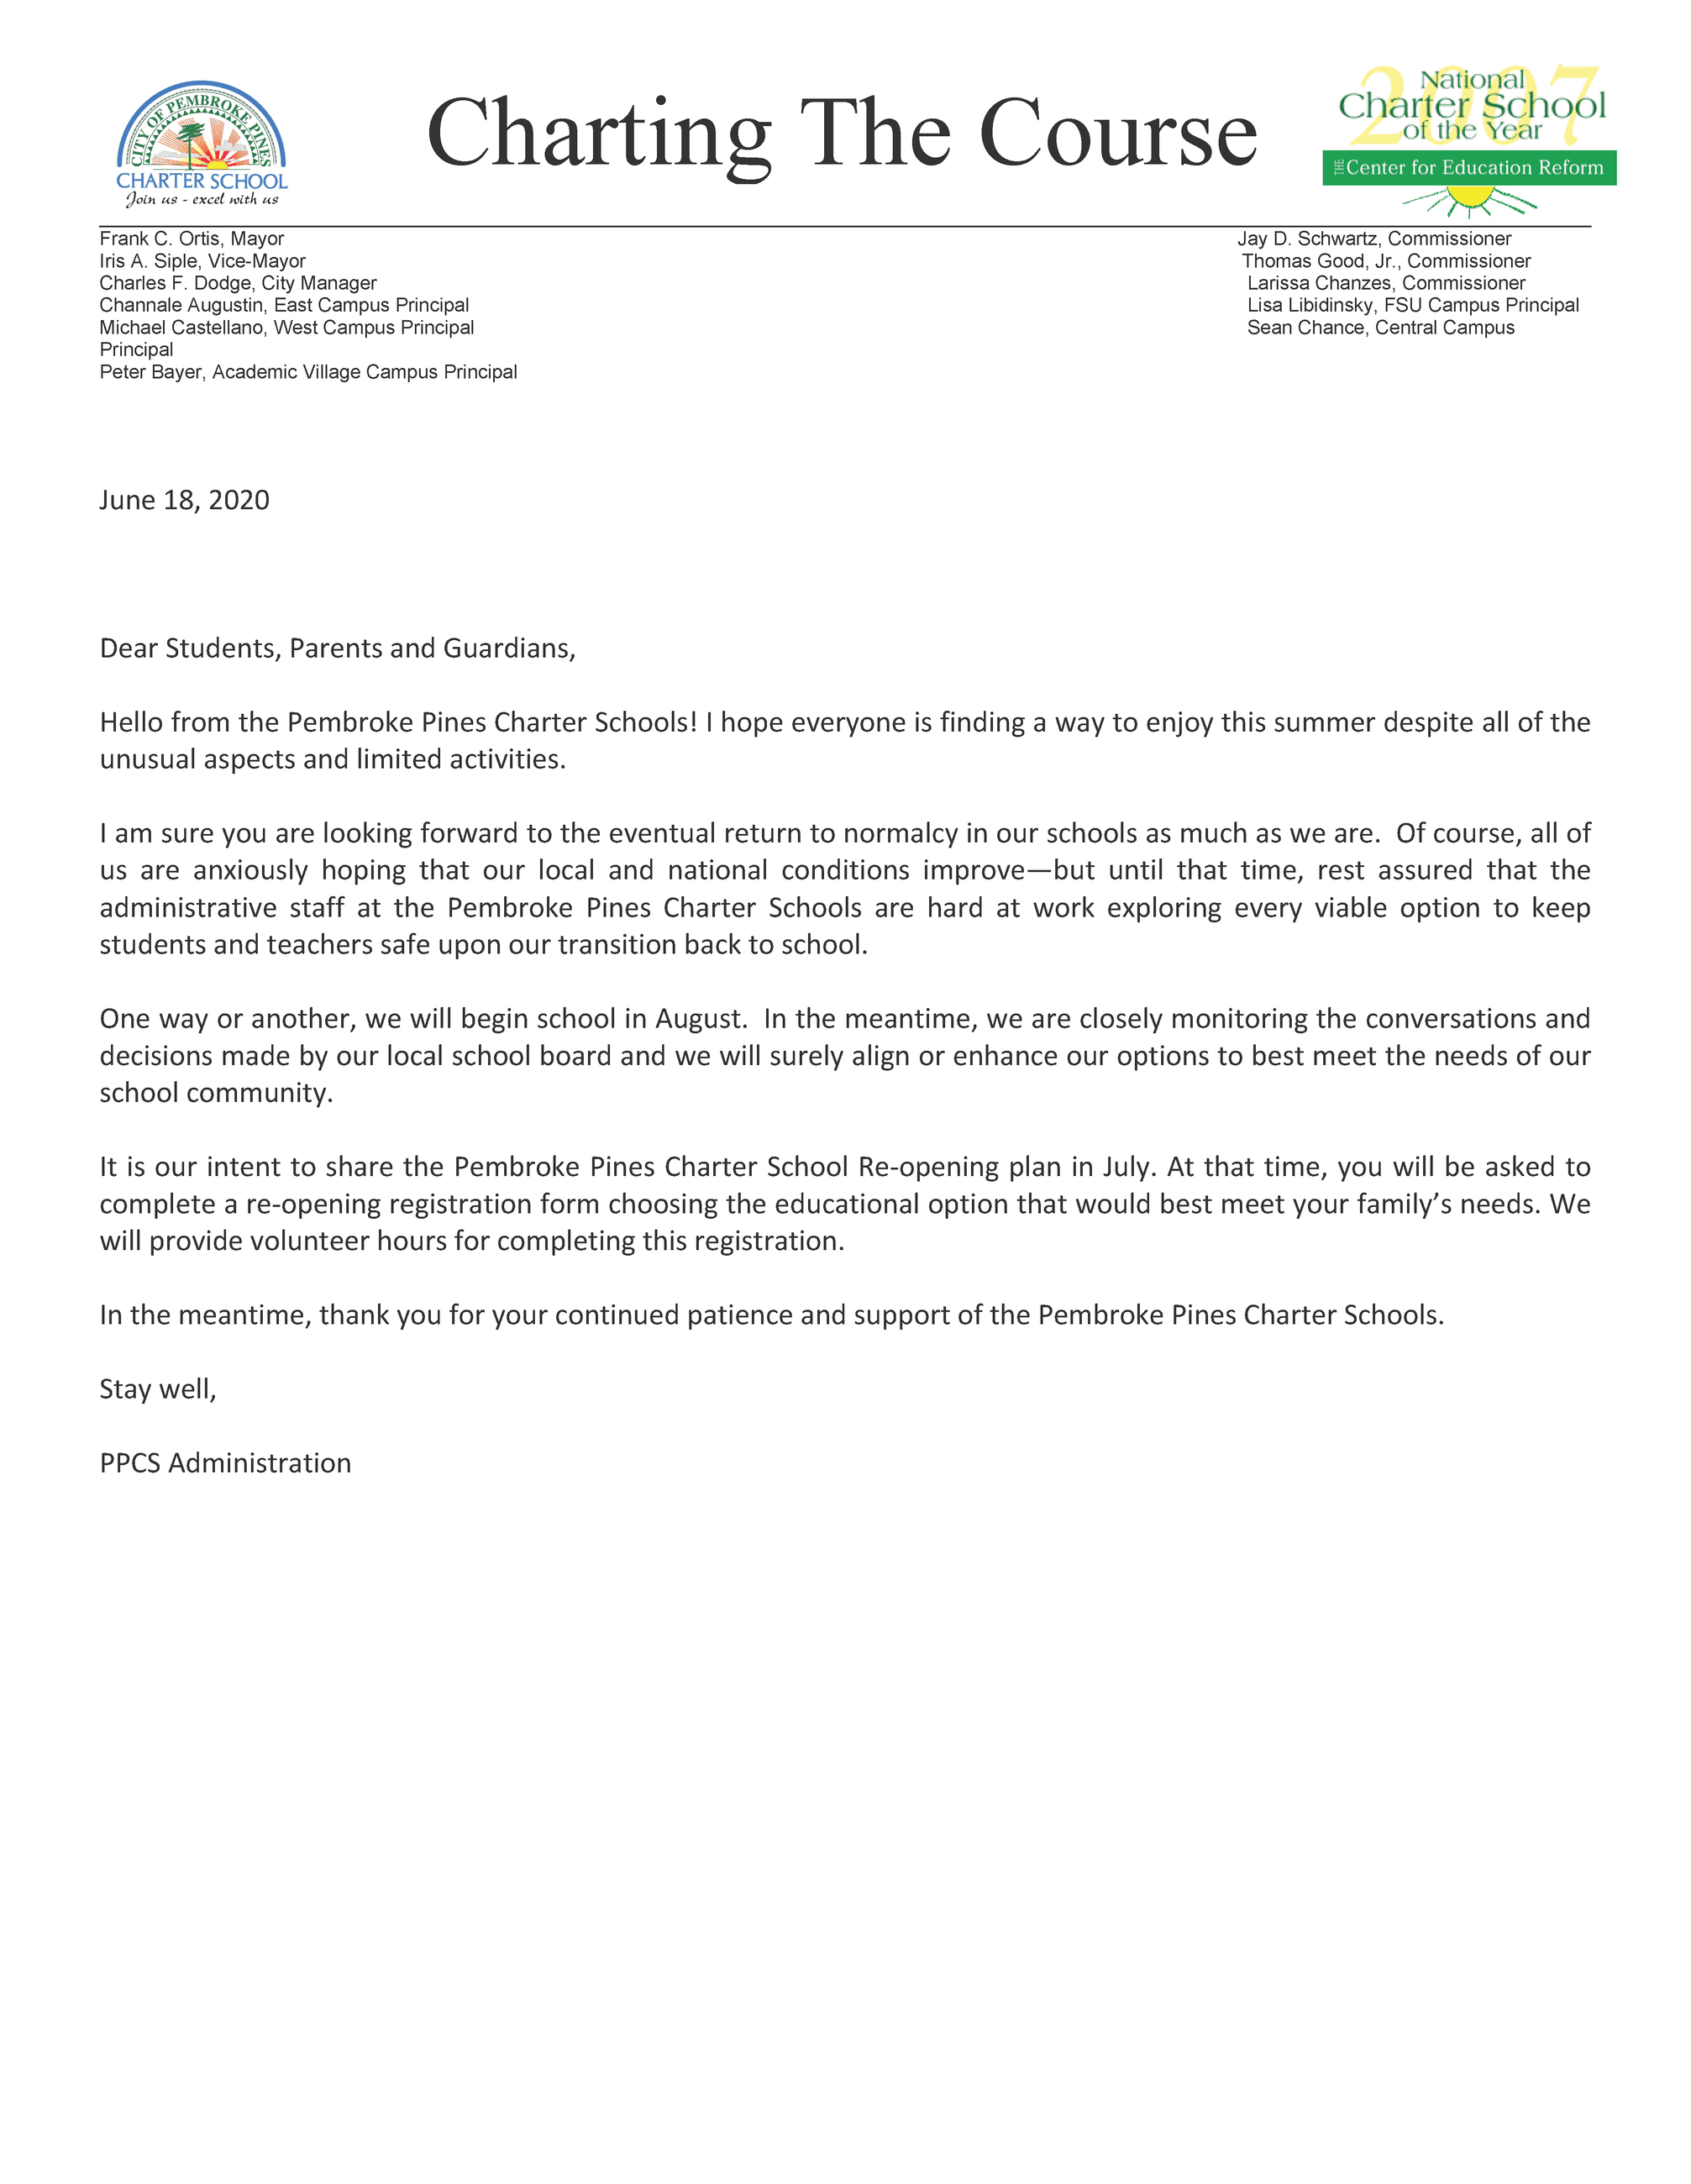 Re-opening letter 6-24-20